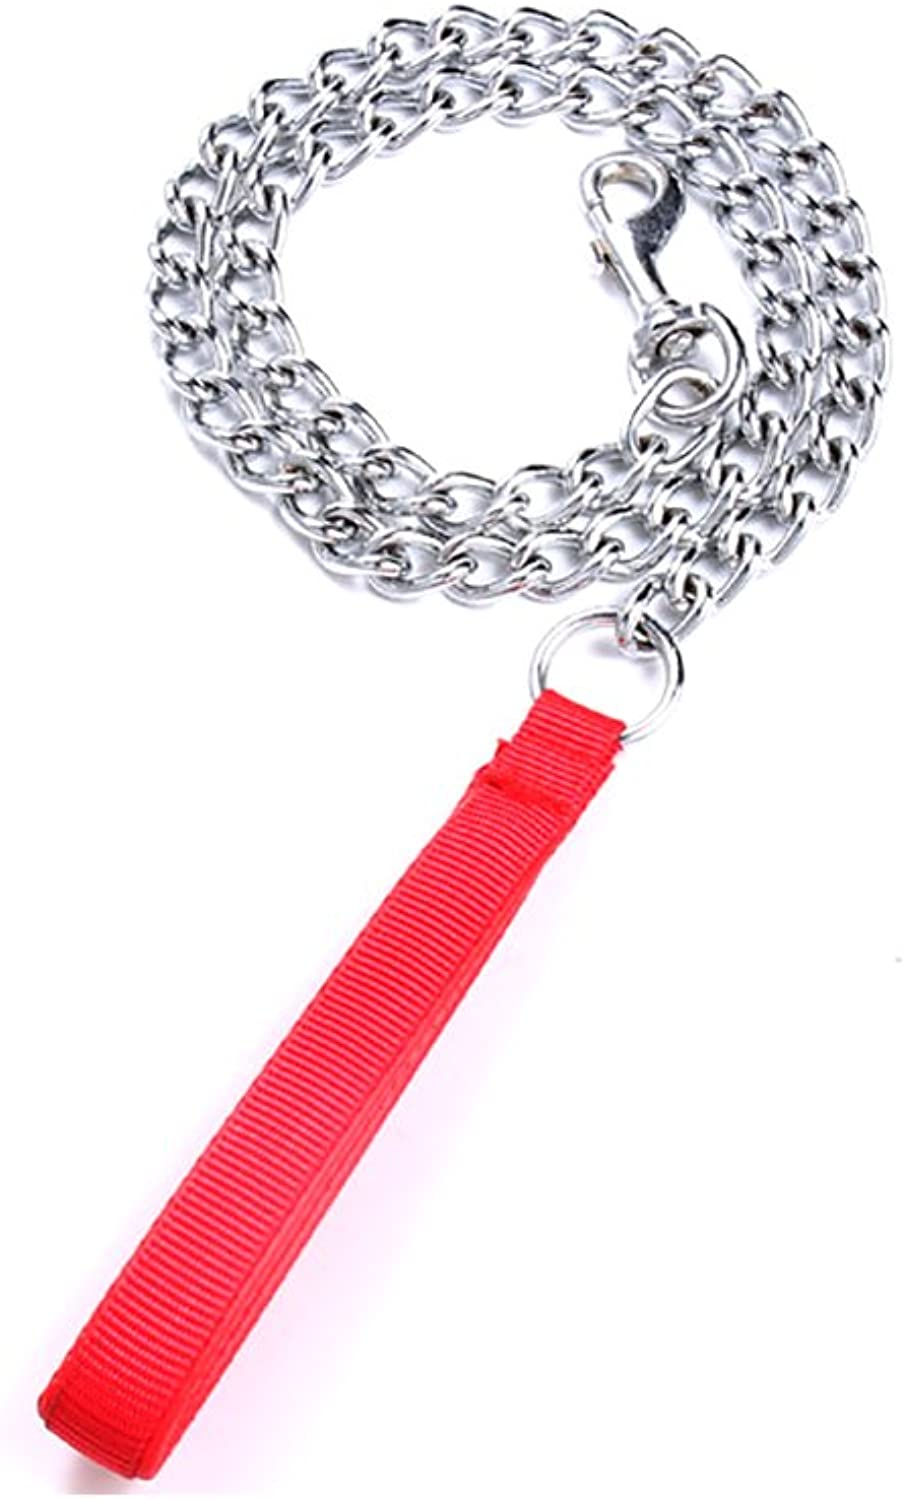 Chain Dog Leash  Dog metal pet leashes with foam Handle (S, Red)